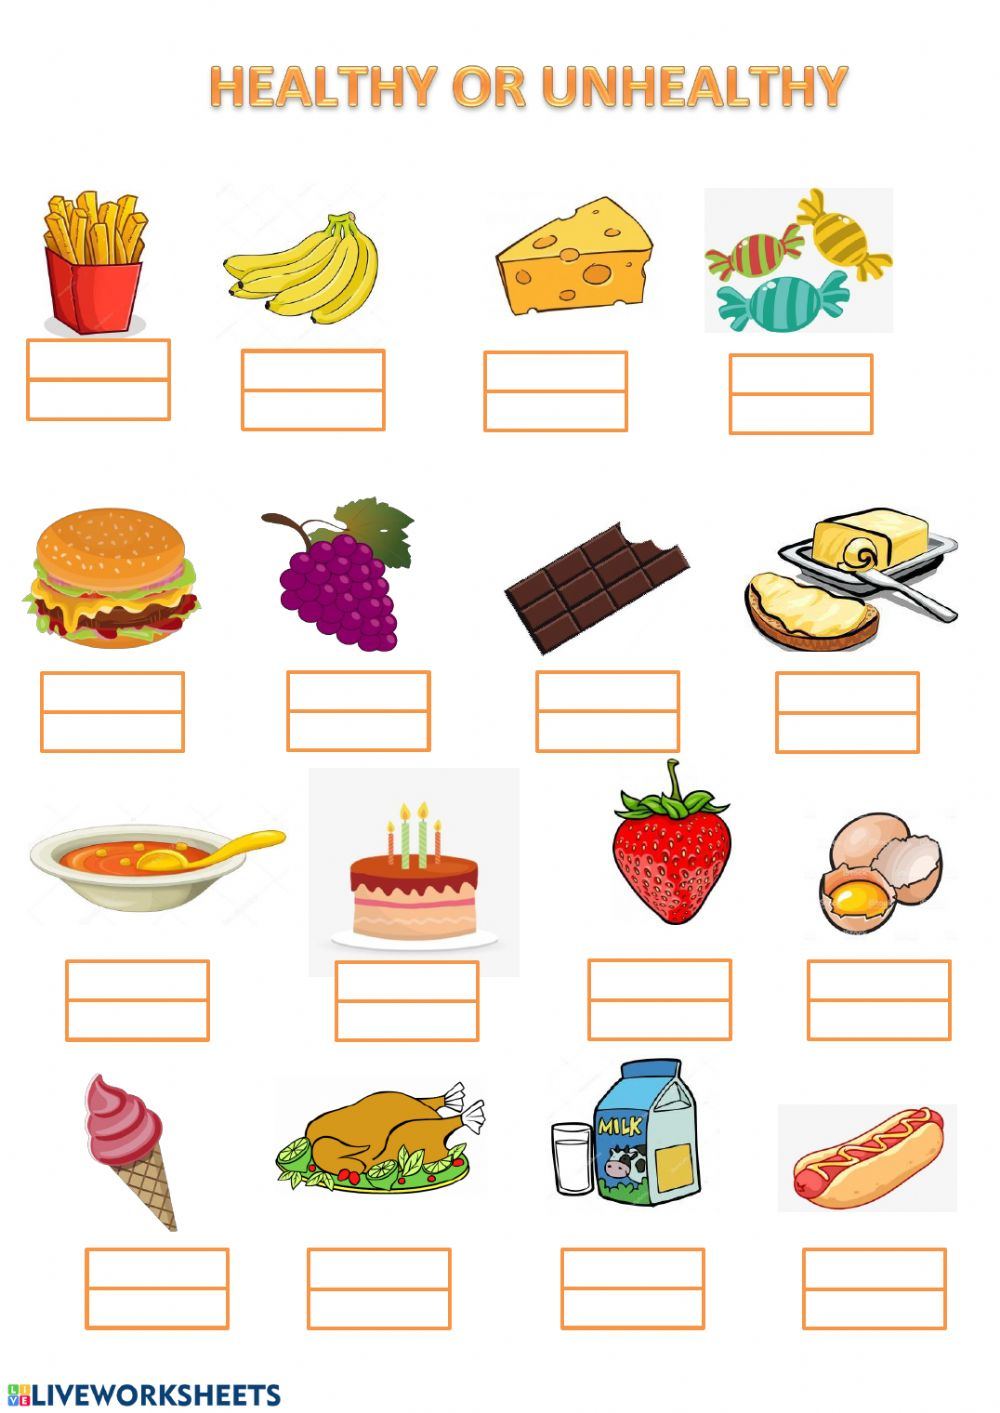 Healthy And Unhealthy Food Choices Worksheets Teaching